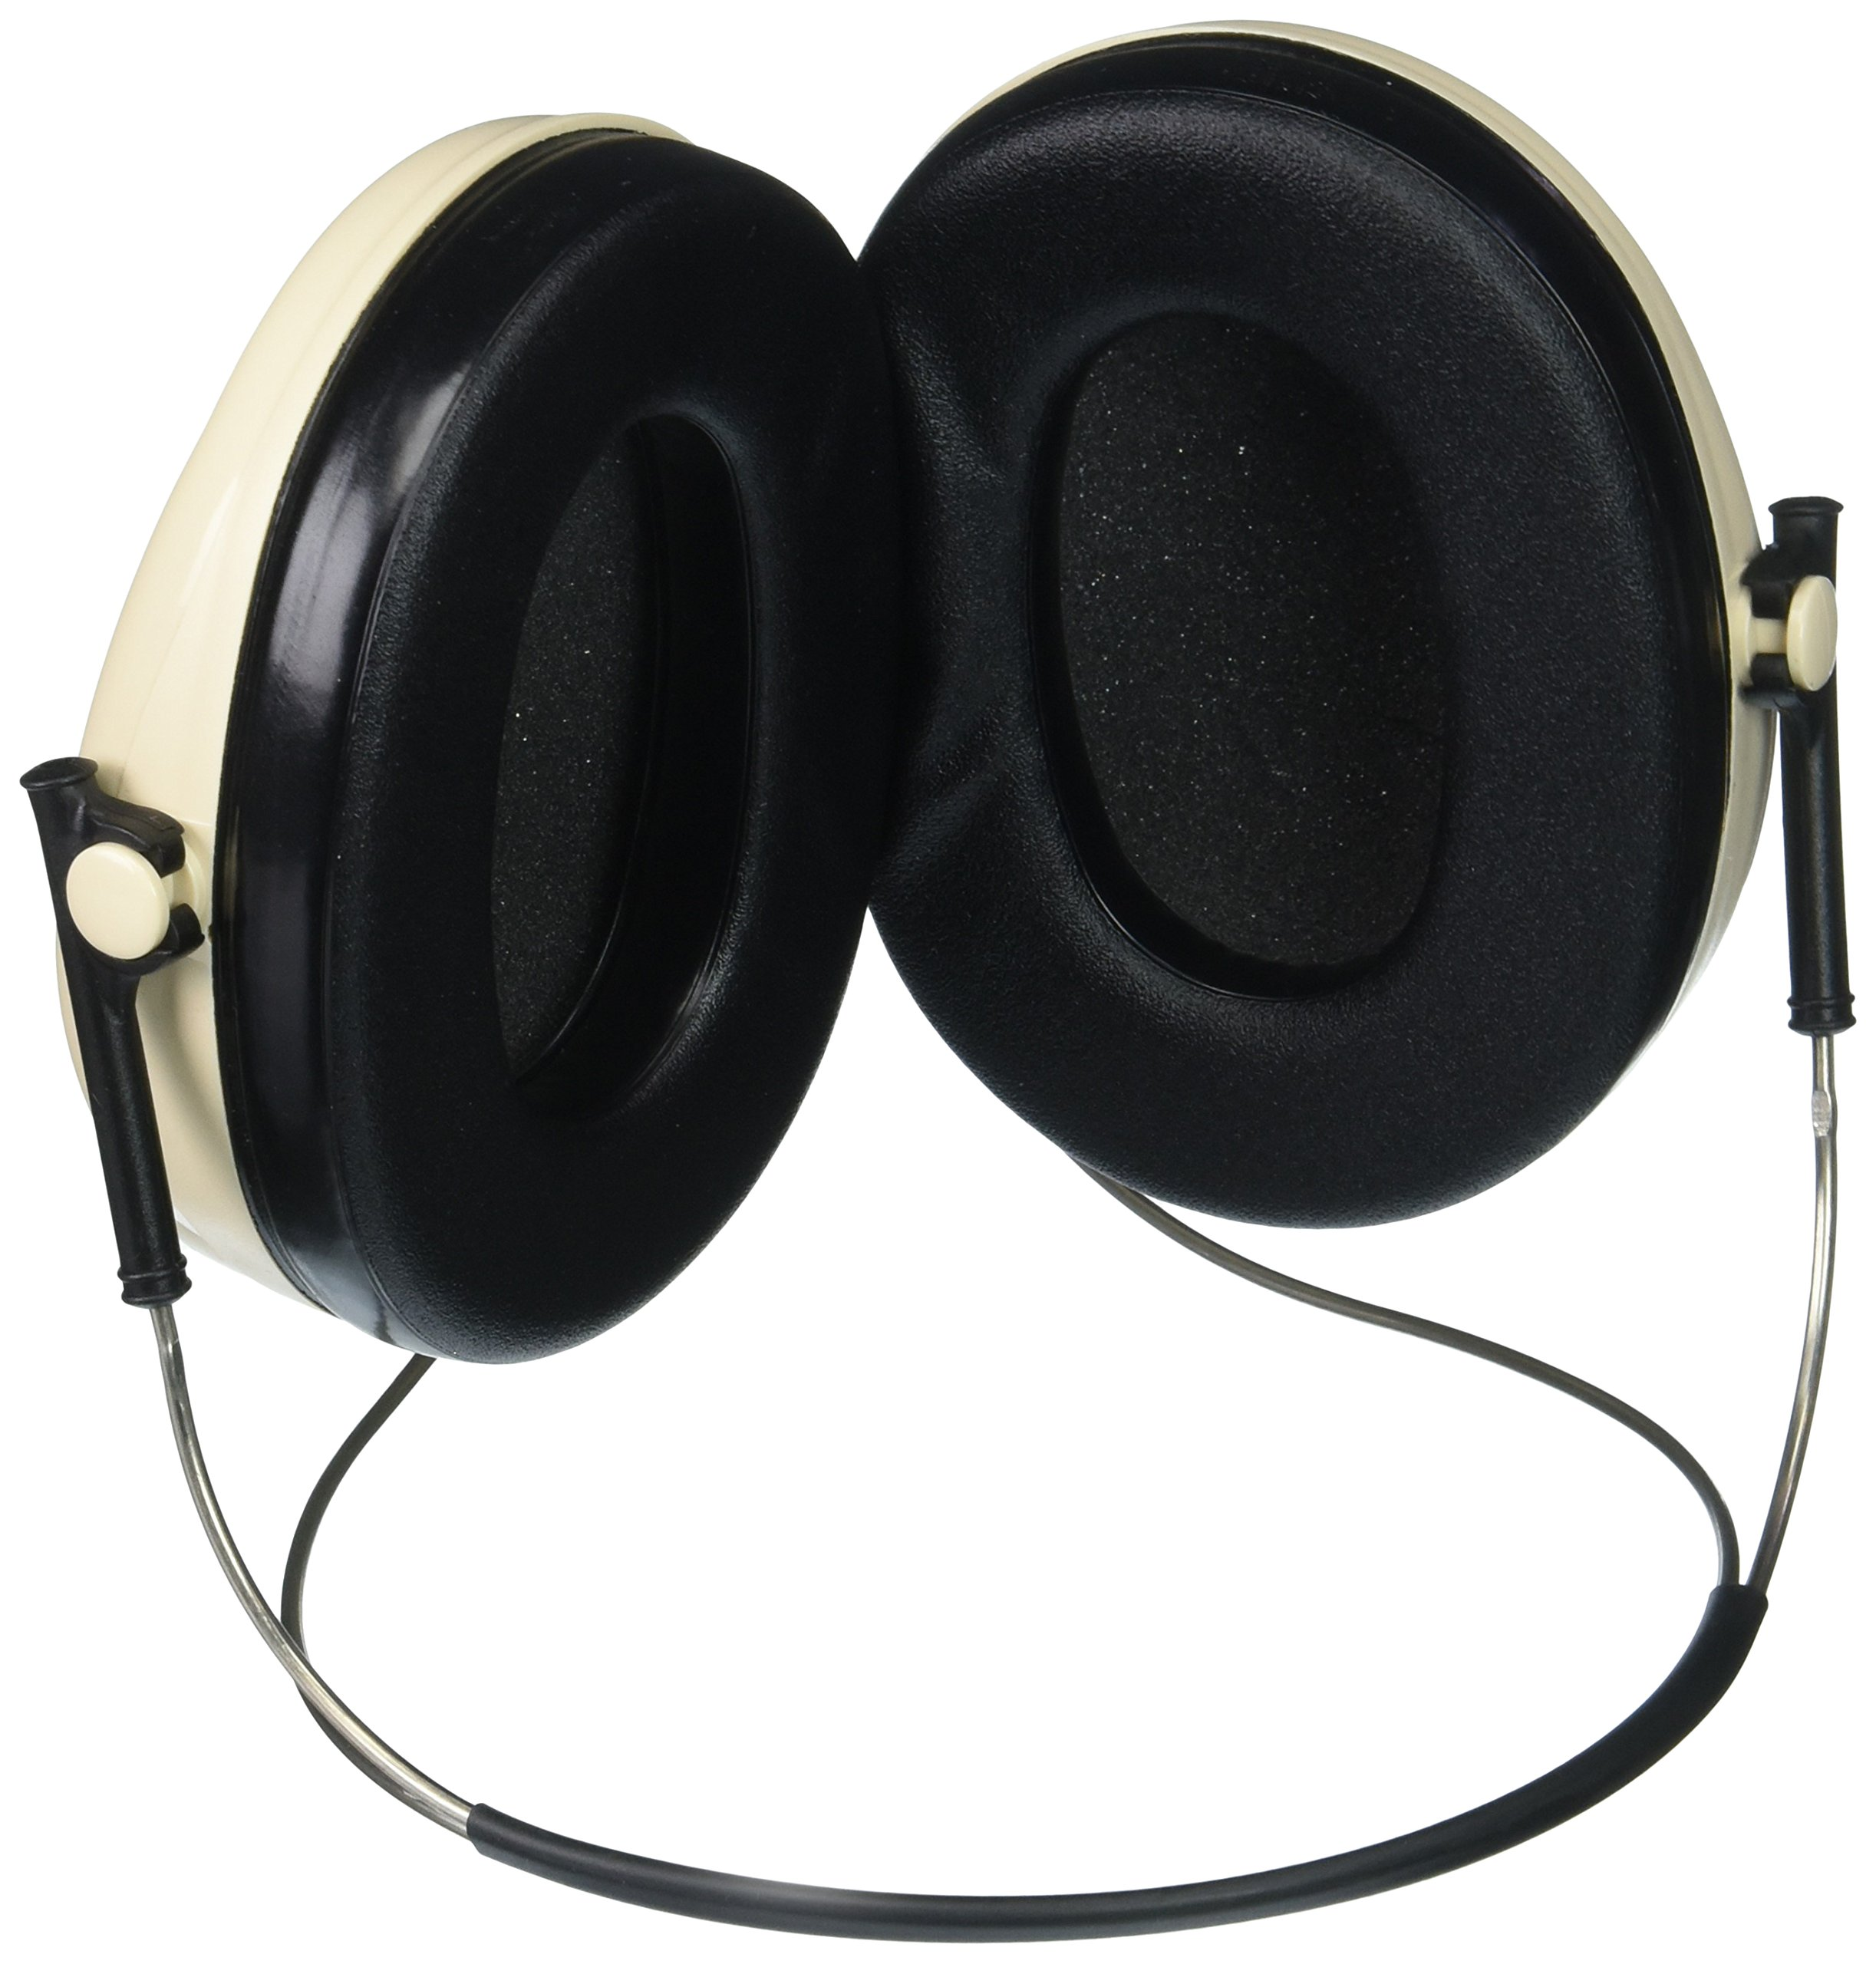 3M Peltor 97008 Optime 95 Behind-the-Head Earmuff #H6B/V